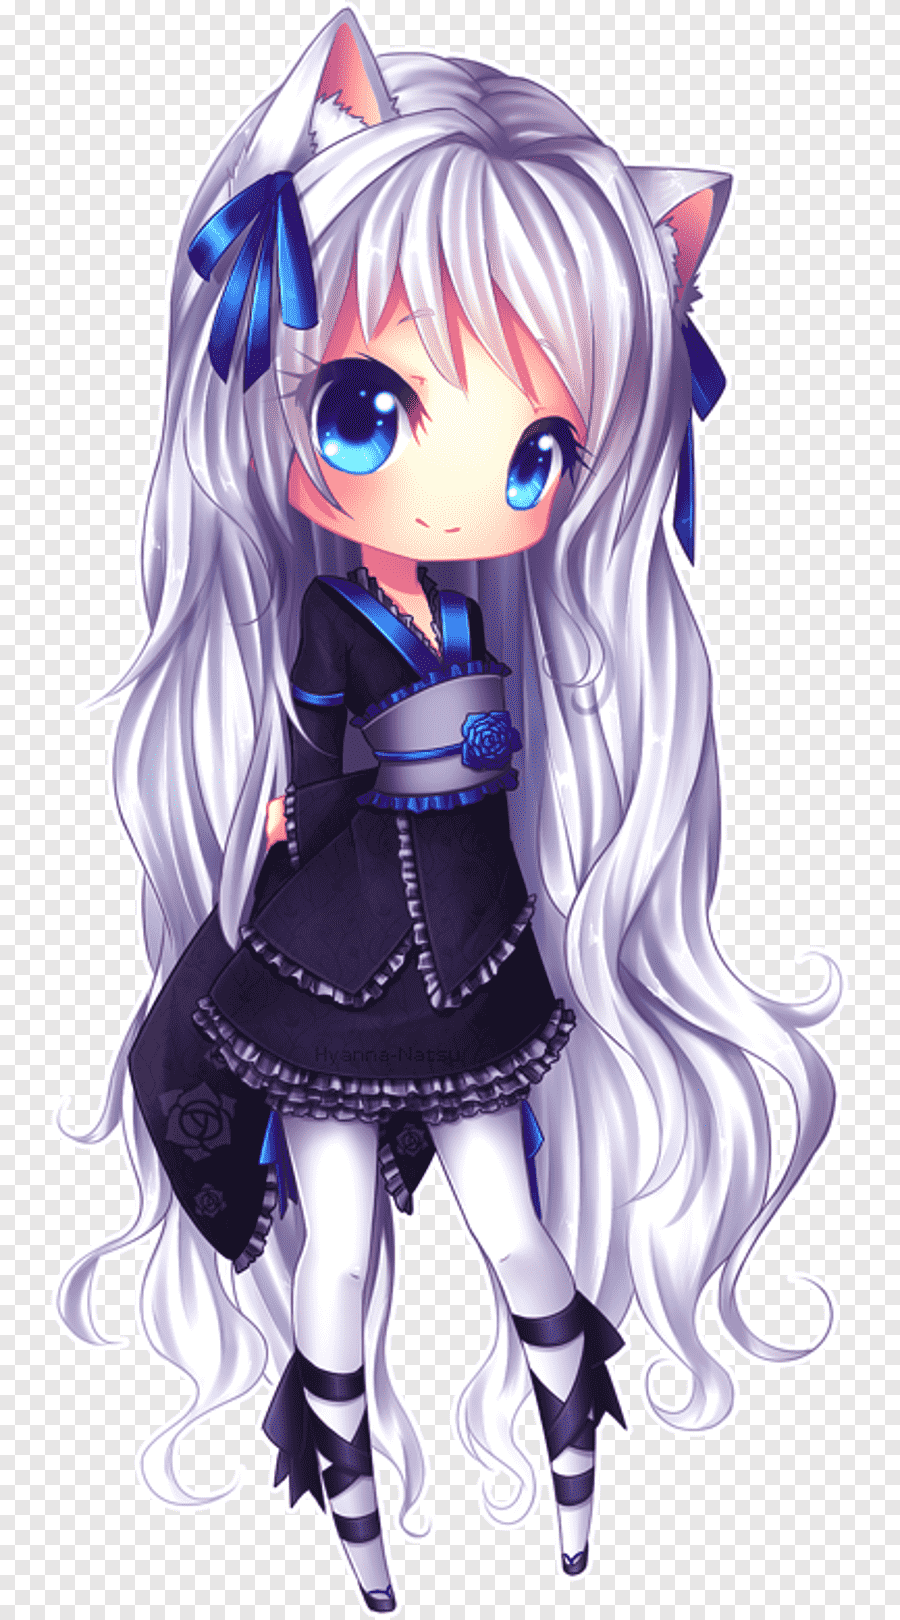 Chibi Anime Cat Girl : chibi, anime, Catgirl, Images, PNGEgg